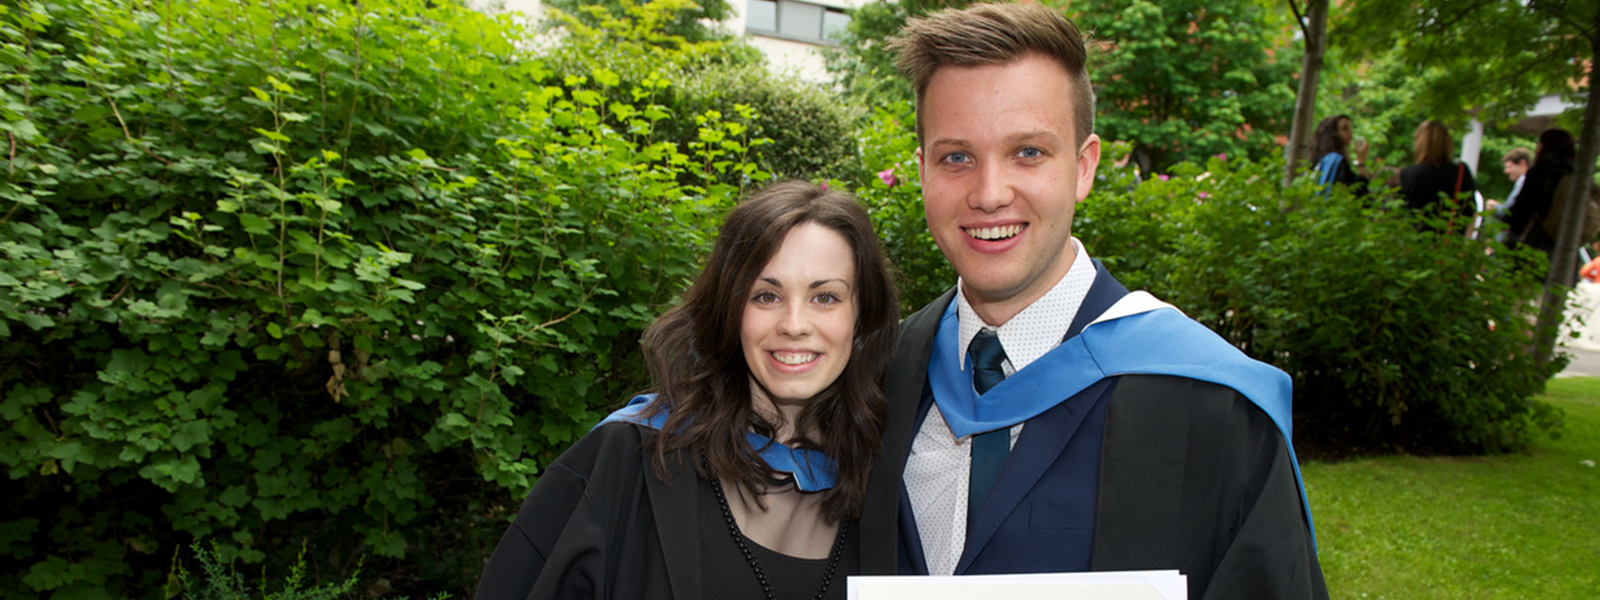 Maria Donachie & Greg Clarke, graduates from the Faculty of Humanities & Social Sciences, July 2015